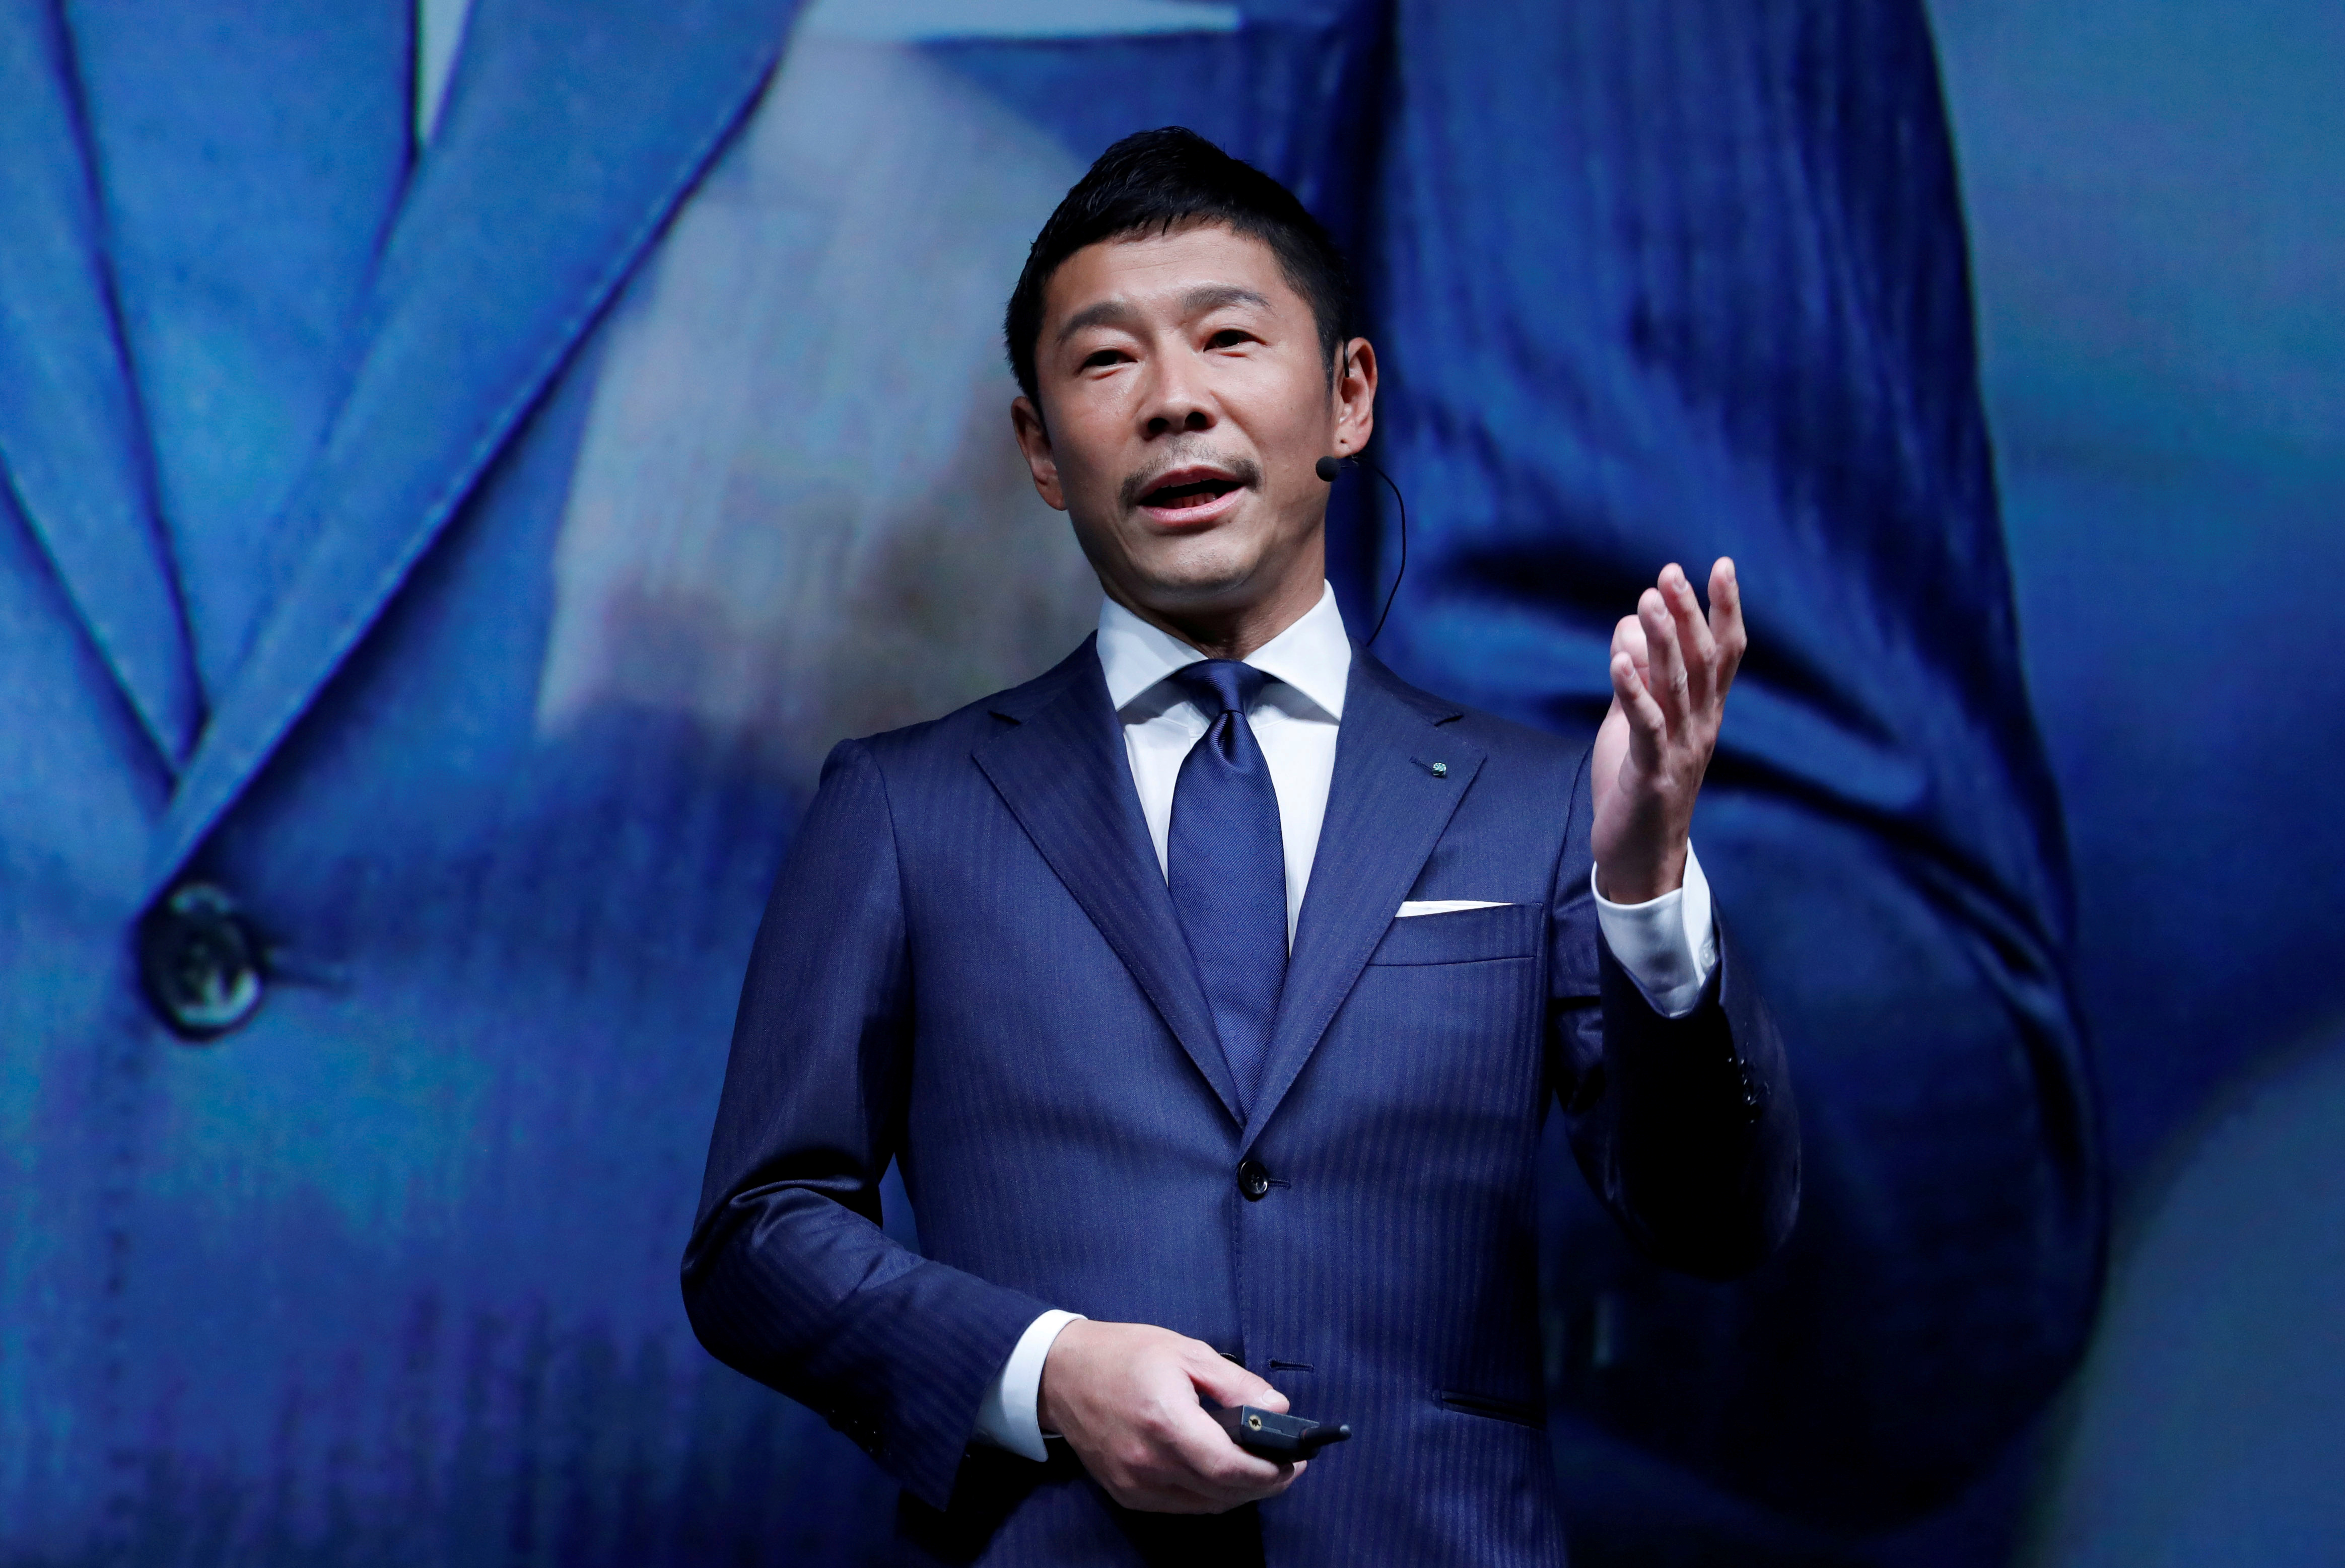 Yusaku Maezawa, the chief executive of Zozo, speaks at an event in Tokyo, Japan on July 3, 2018.